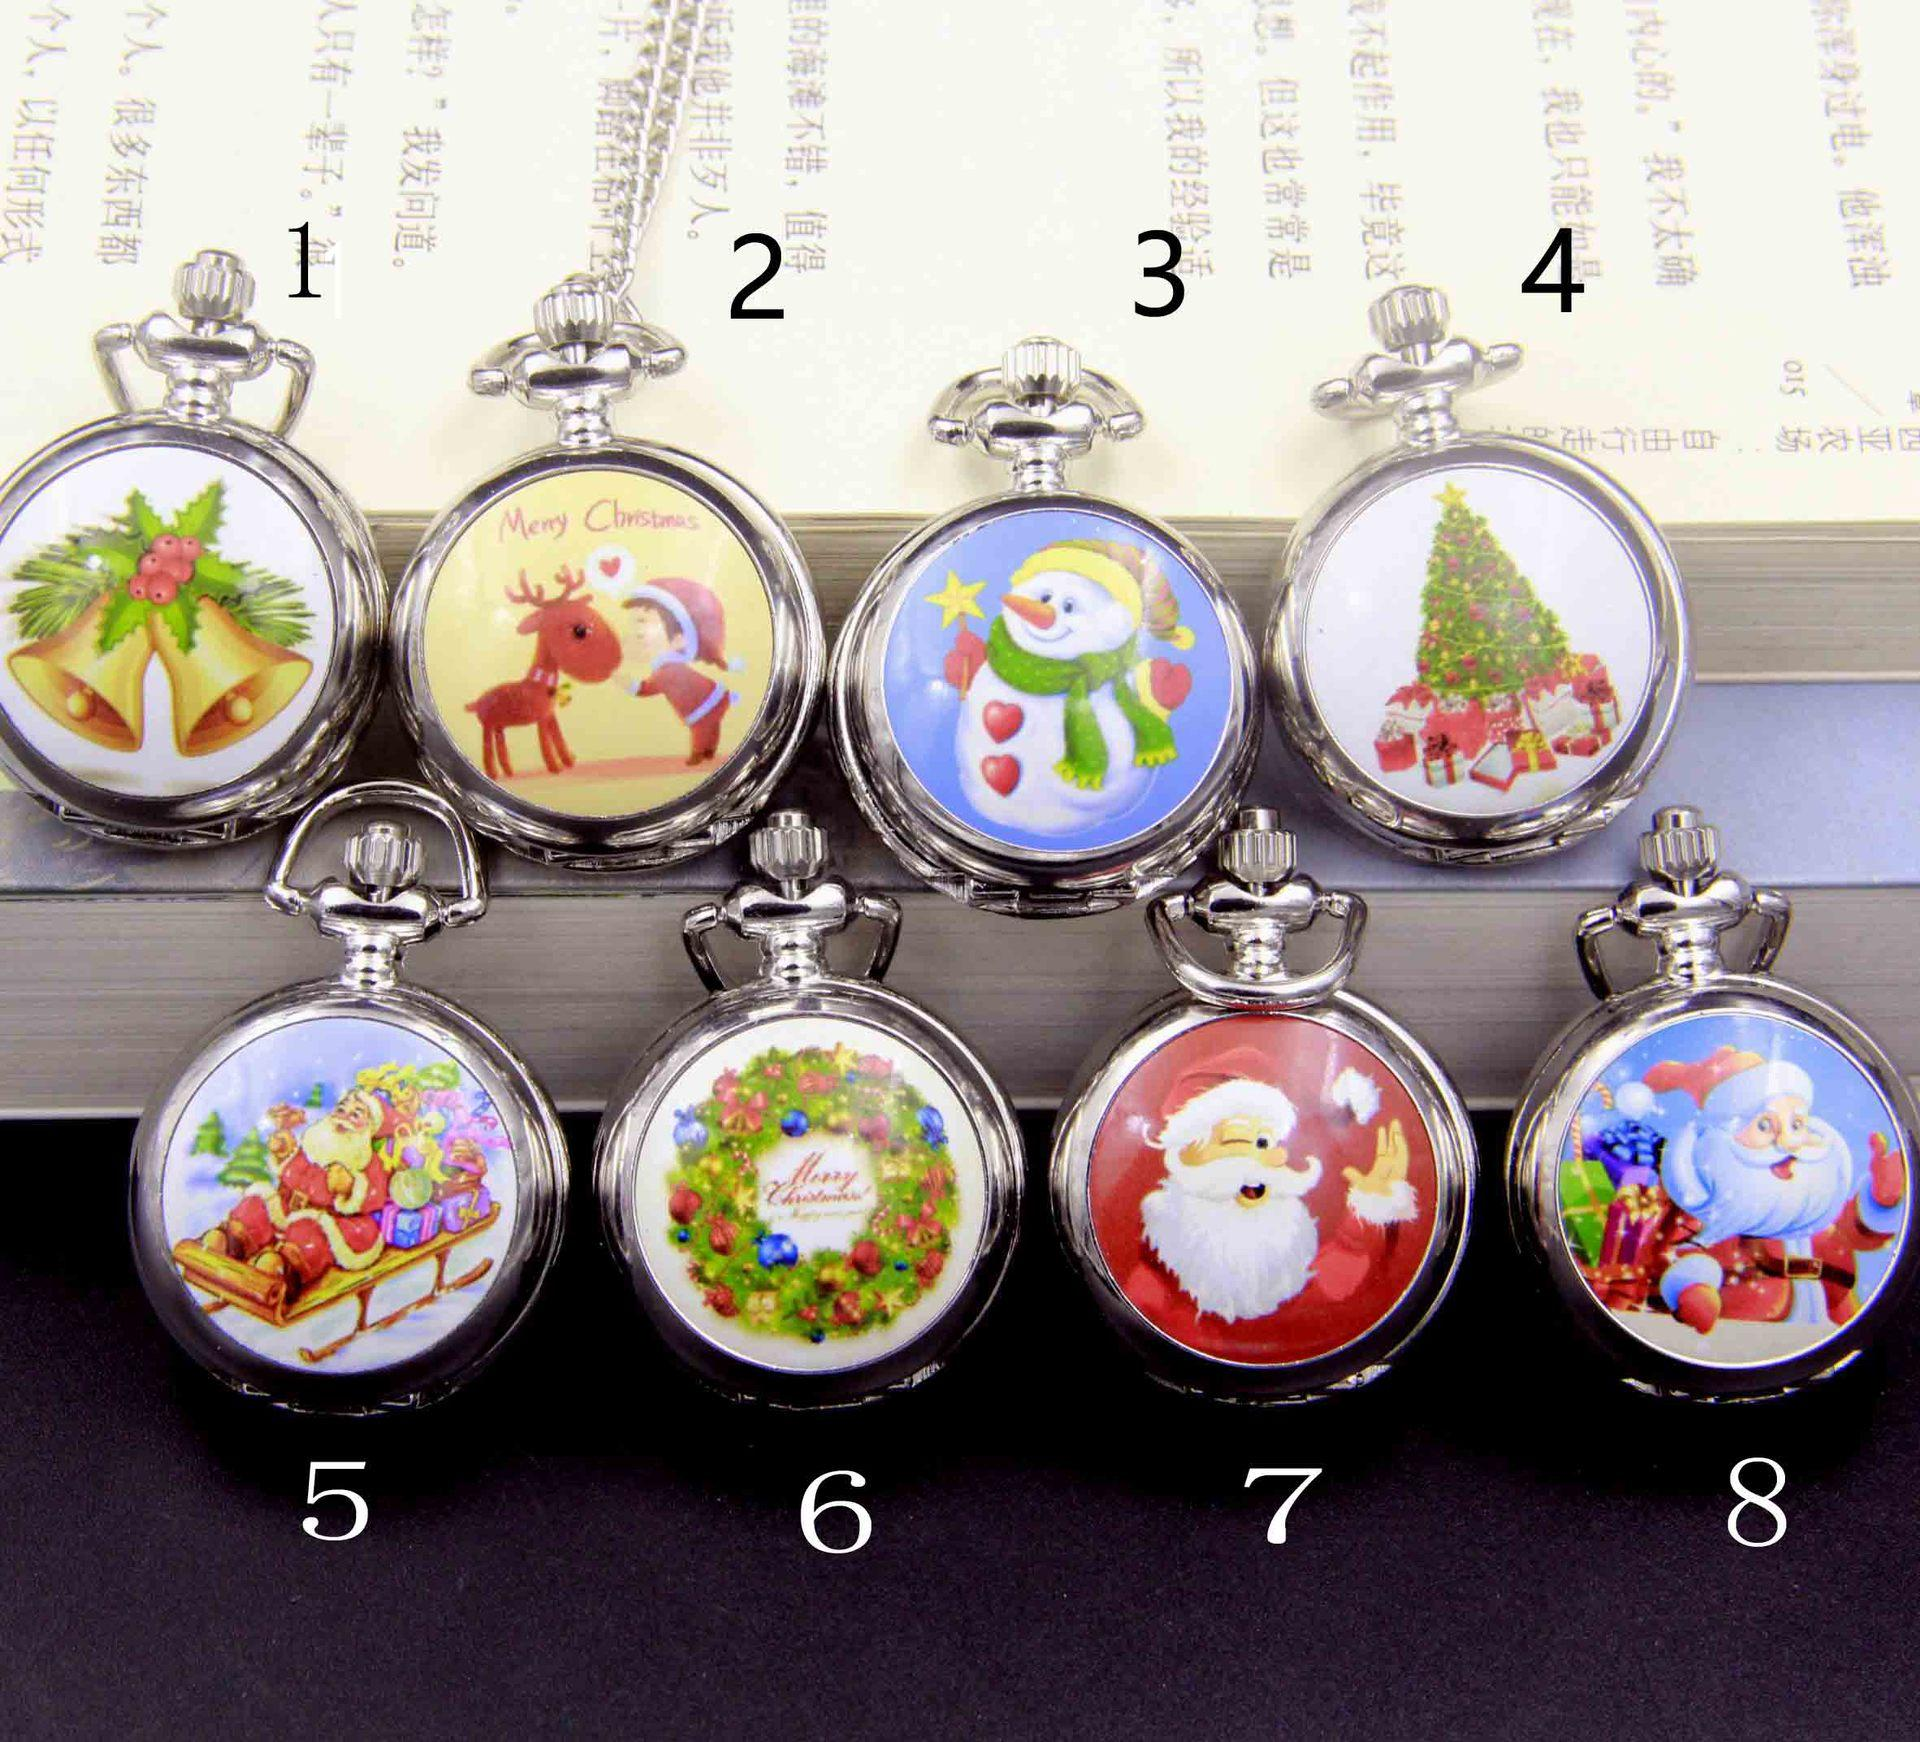 White steel enamel small pocket watch Christmas pocket watch for snowman Santa Claus a sleigh pulled by reindeer